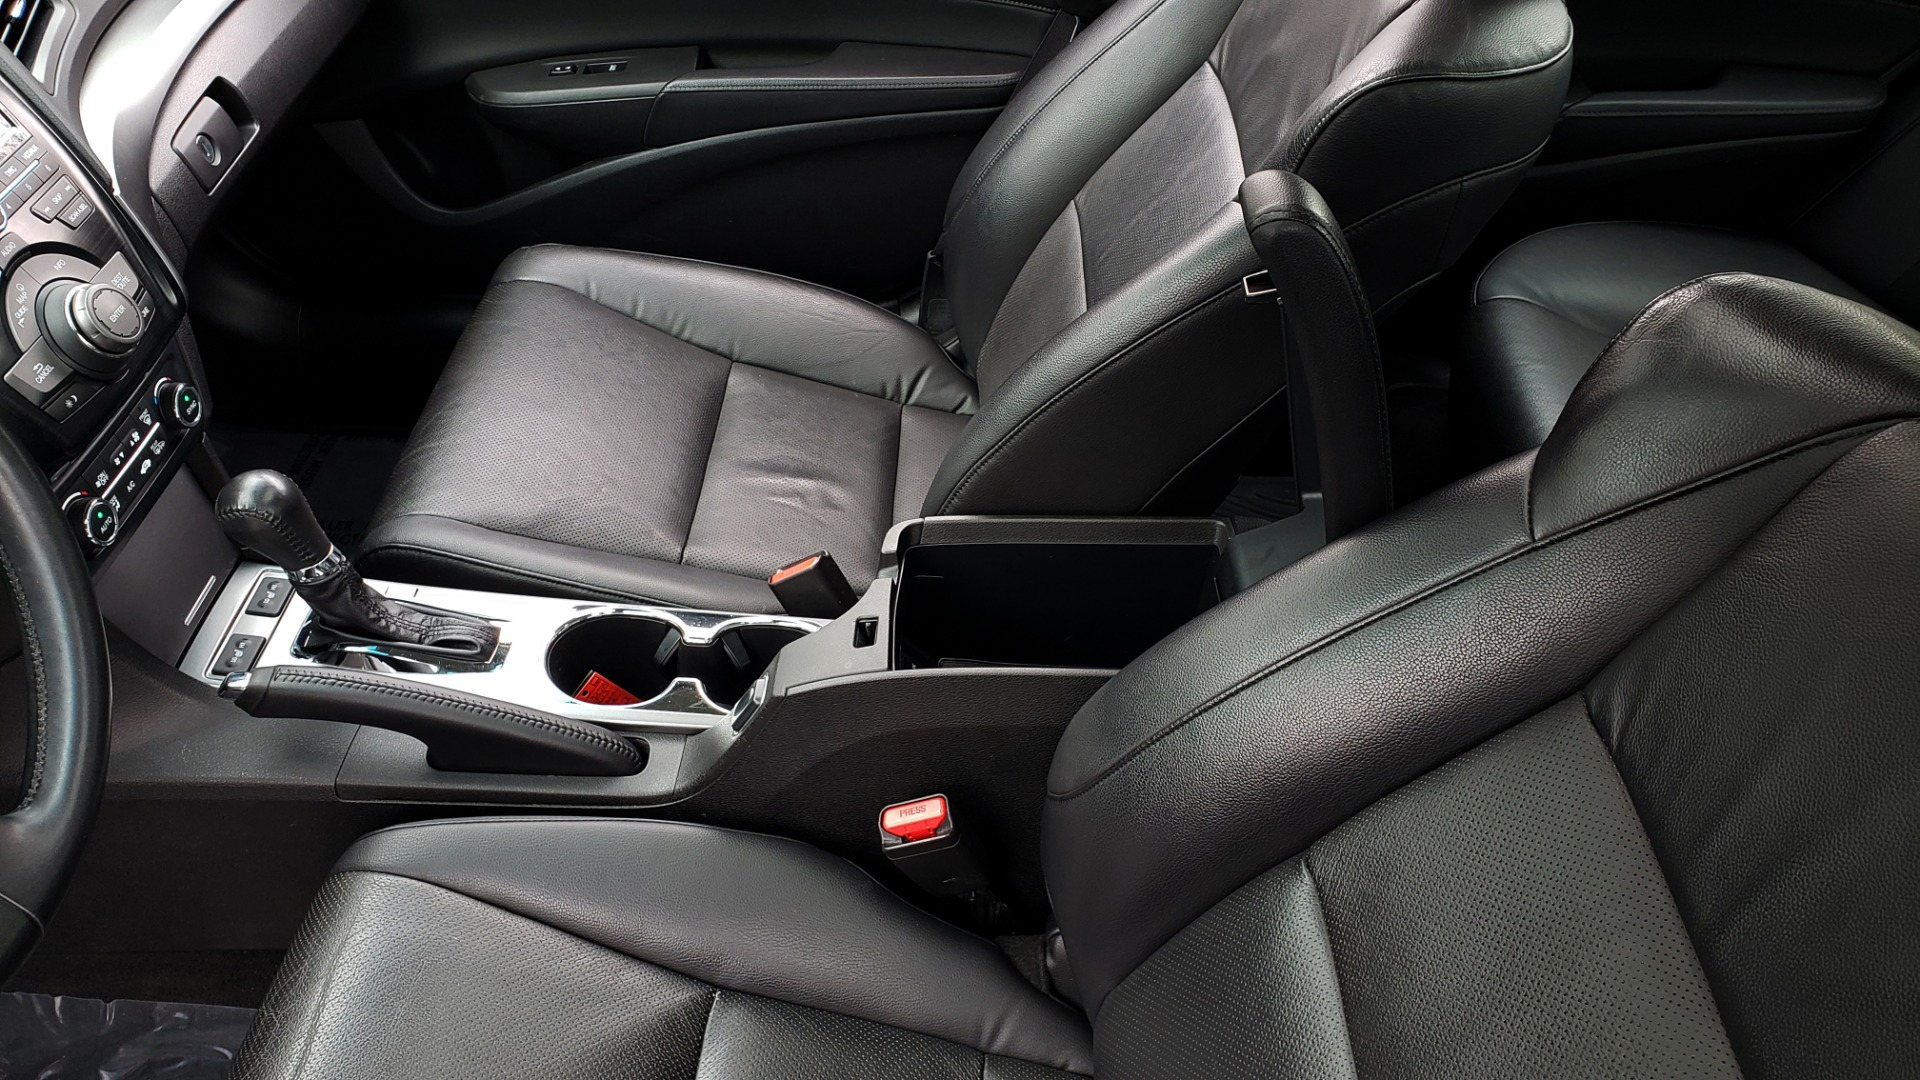 Used 2013 Acura ILX TECH PKG / SUNROOF / NAV / DUAL-ZONE A/C / REARVIEW for sale Sold at Formula Imports in Charlotte NC 28227 50